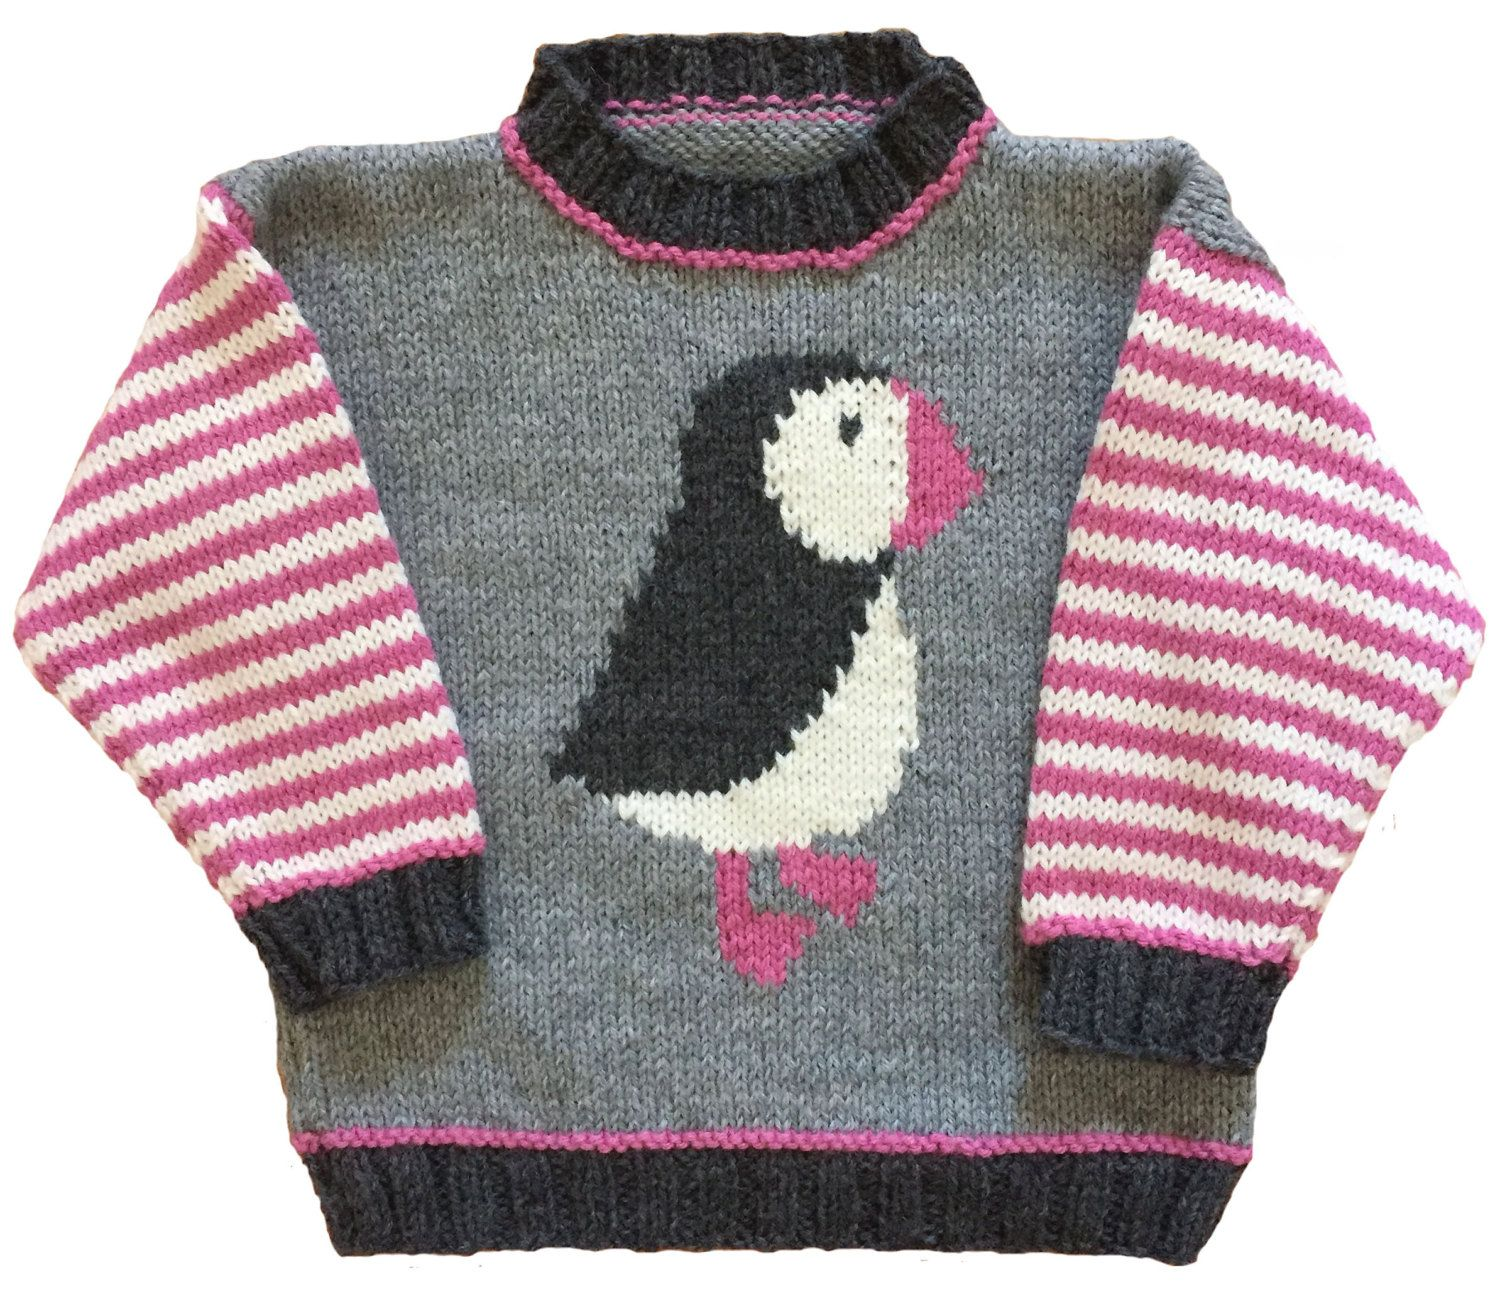 Puffin Pullover Knitting Pattern by RooDesignsForKids on Etsy ...